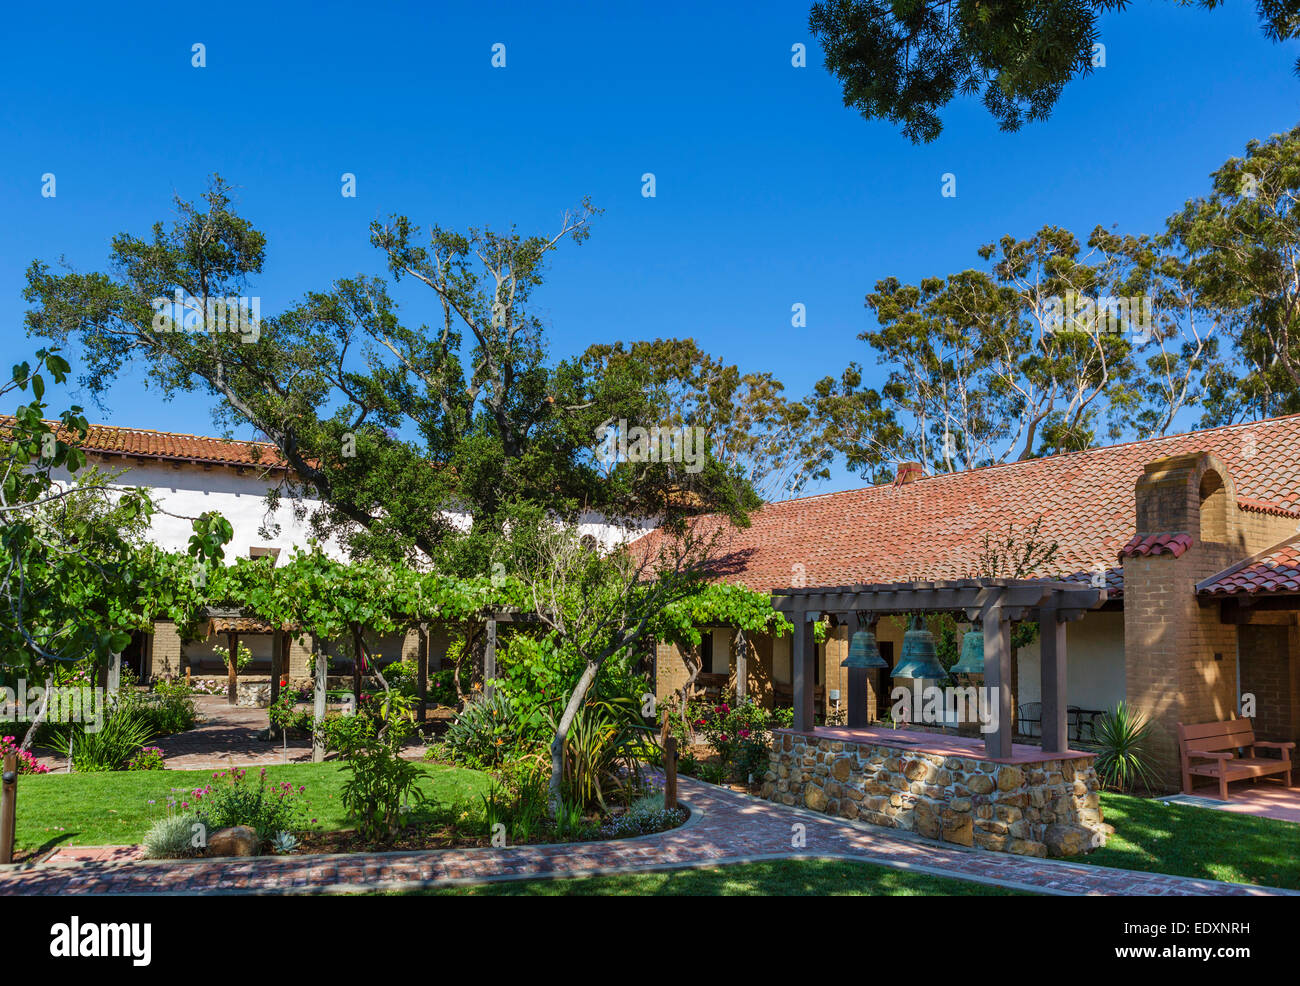 Gardens of Mission San Luis Obispo, California, USA - Stock Image